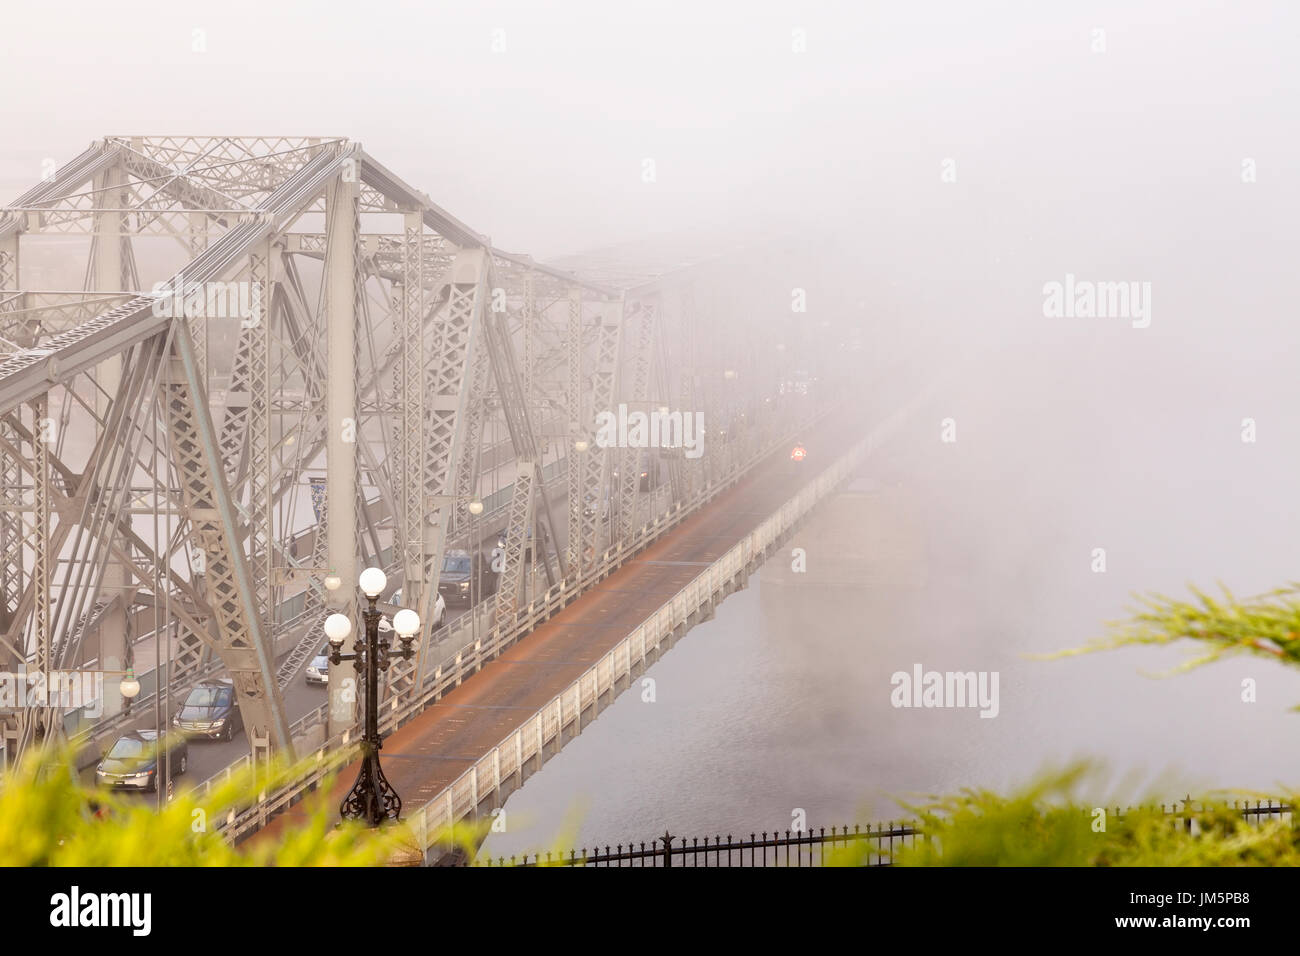 The Royal Alexandra Interprovincial Bridge is a steel truss cantilever bridge that spans the Ottawa River during a foggy morning in Ottawa, Ontario. - Stock Image